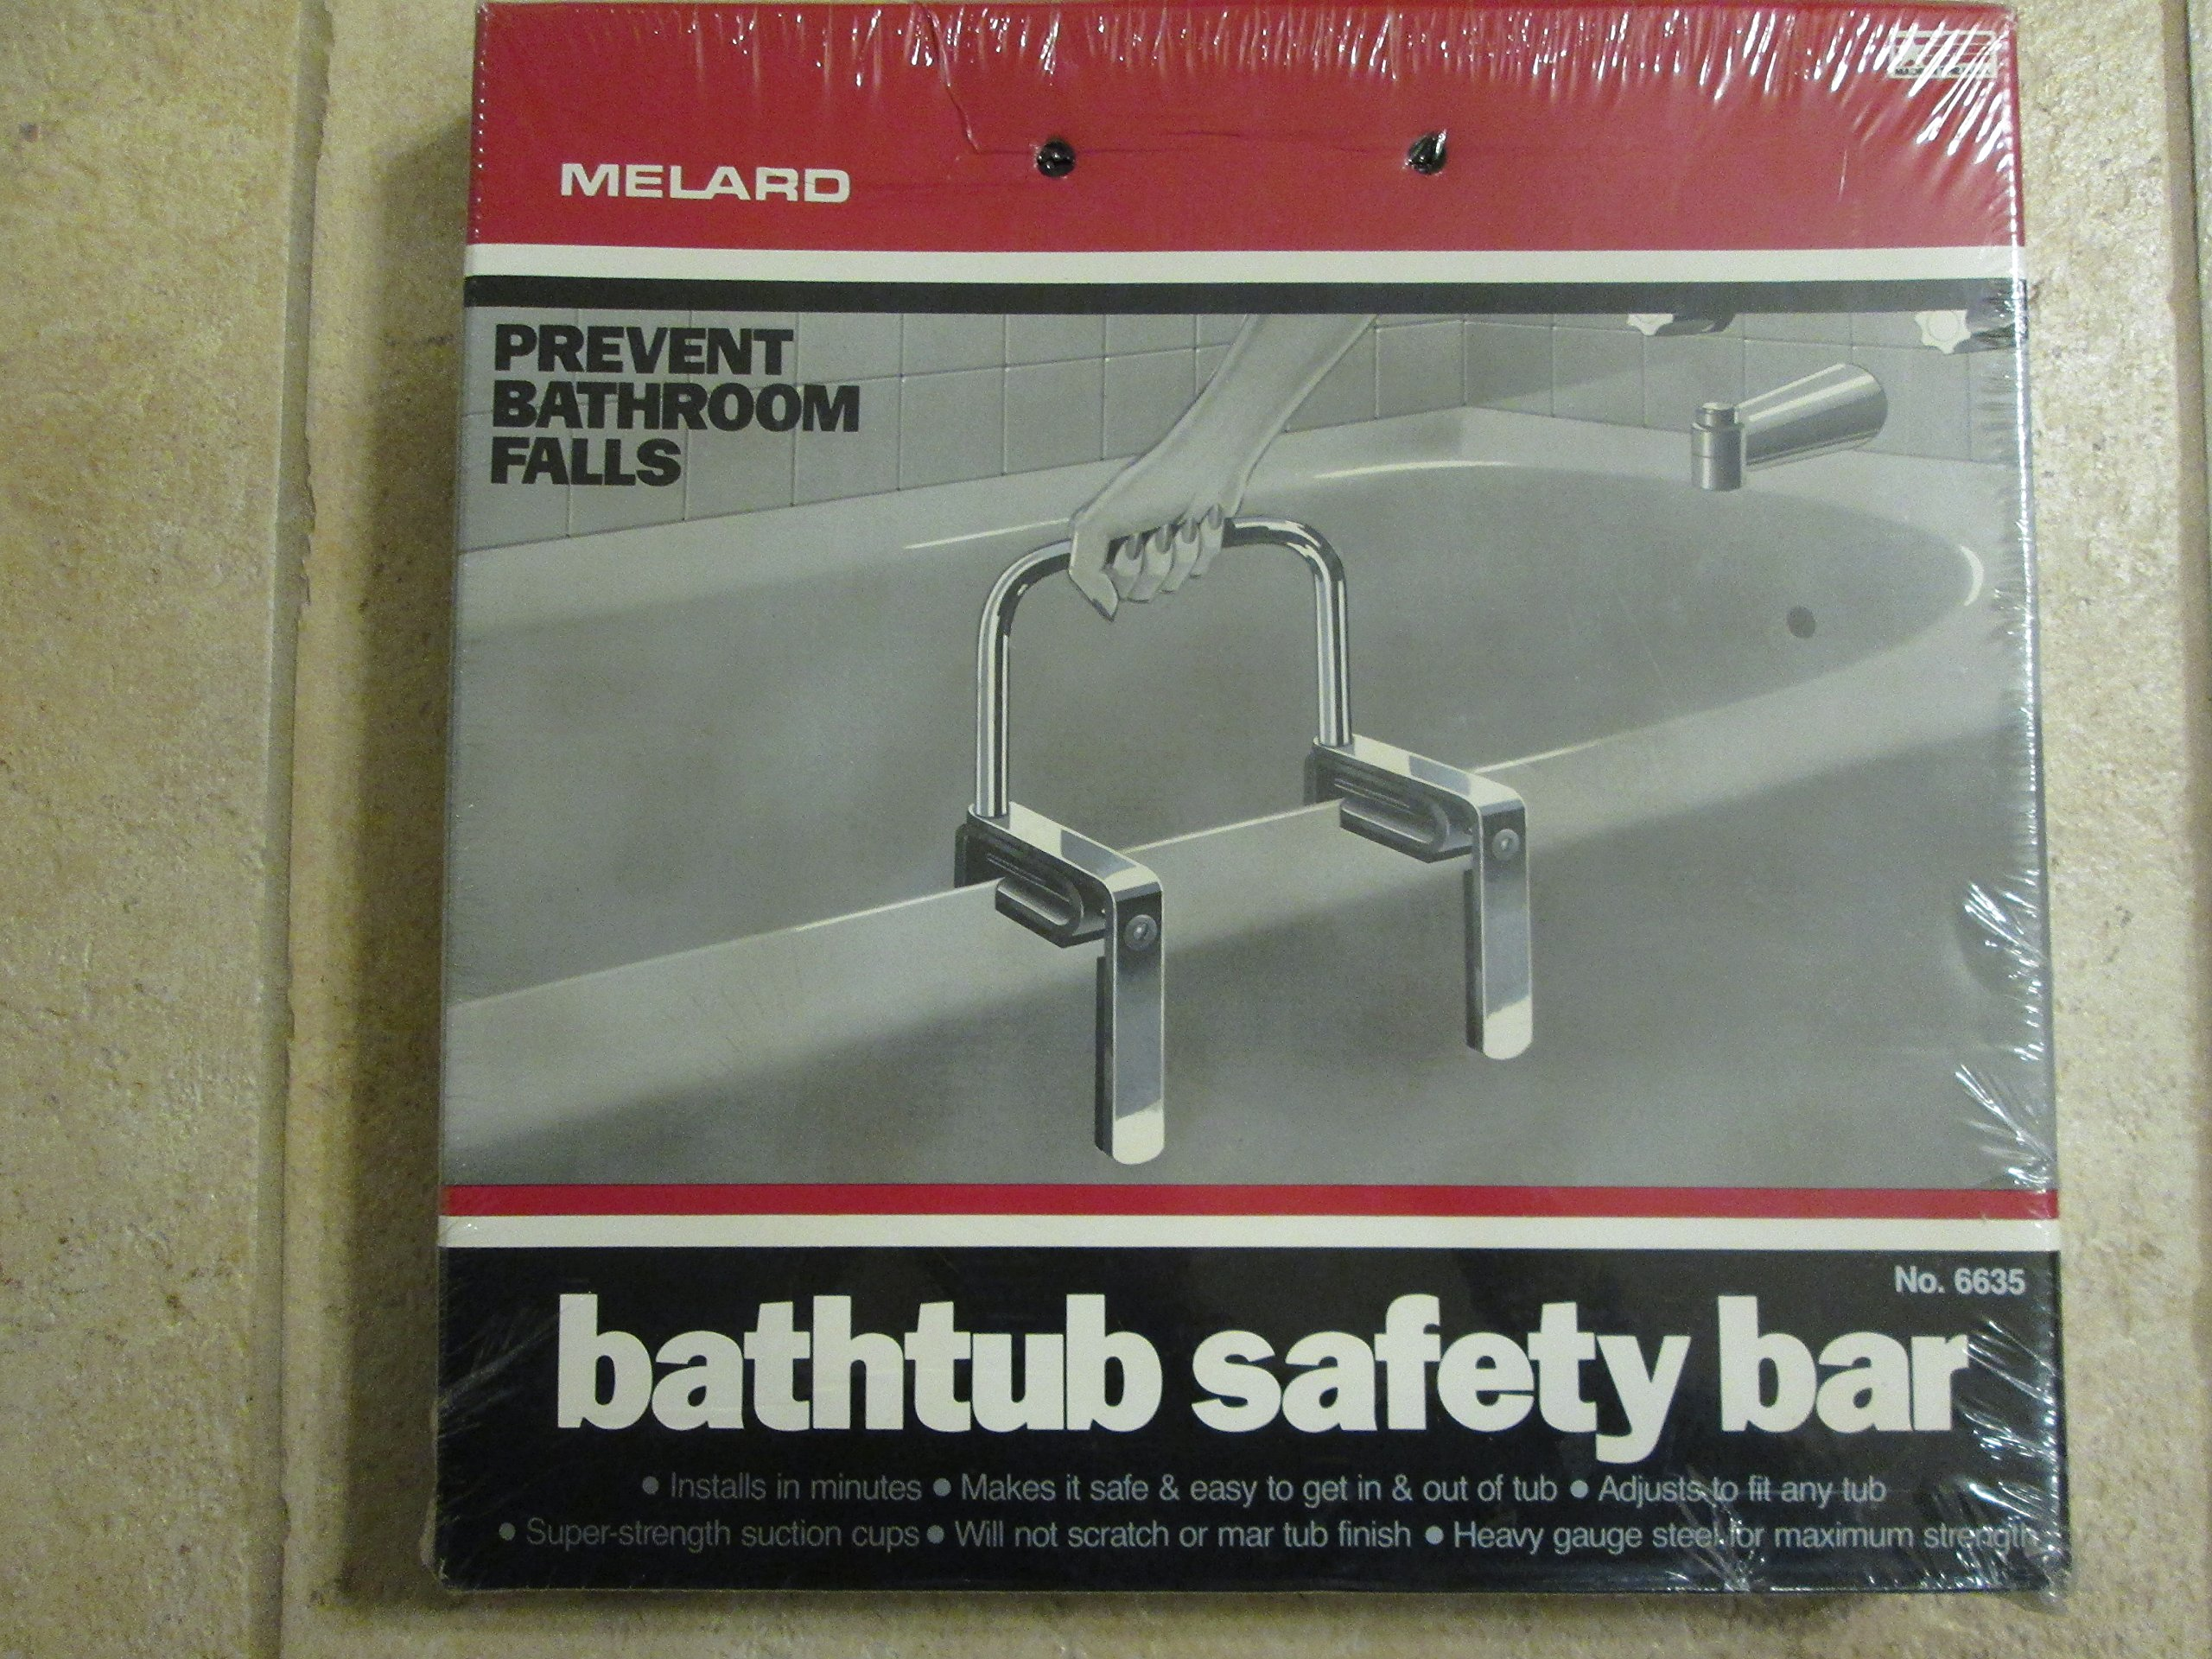 Bathtub Safety Bar by Melard Bathtub Safety Bar